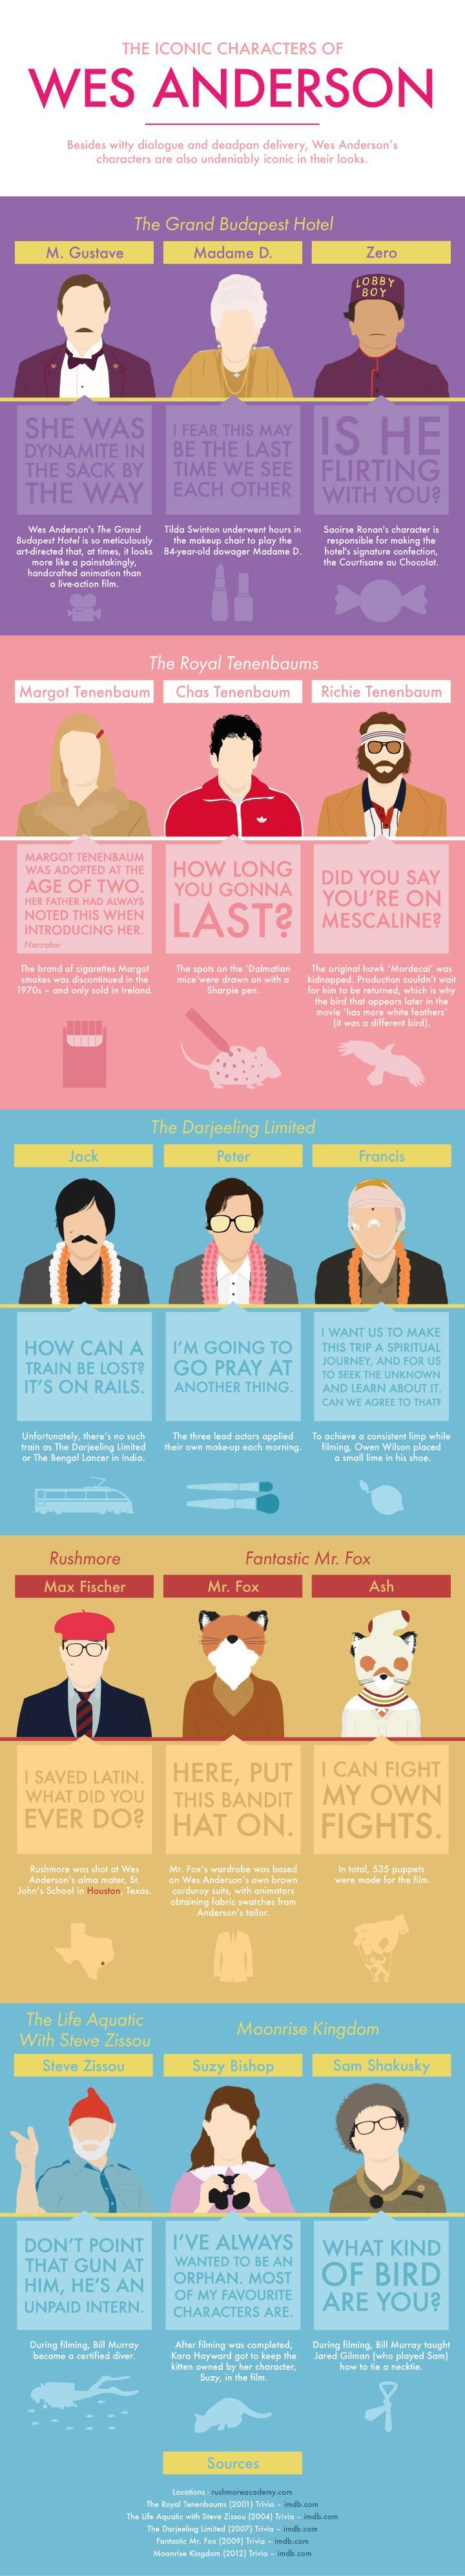 The Iconic Characters of Wes Anderson #infographic